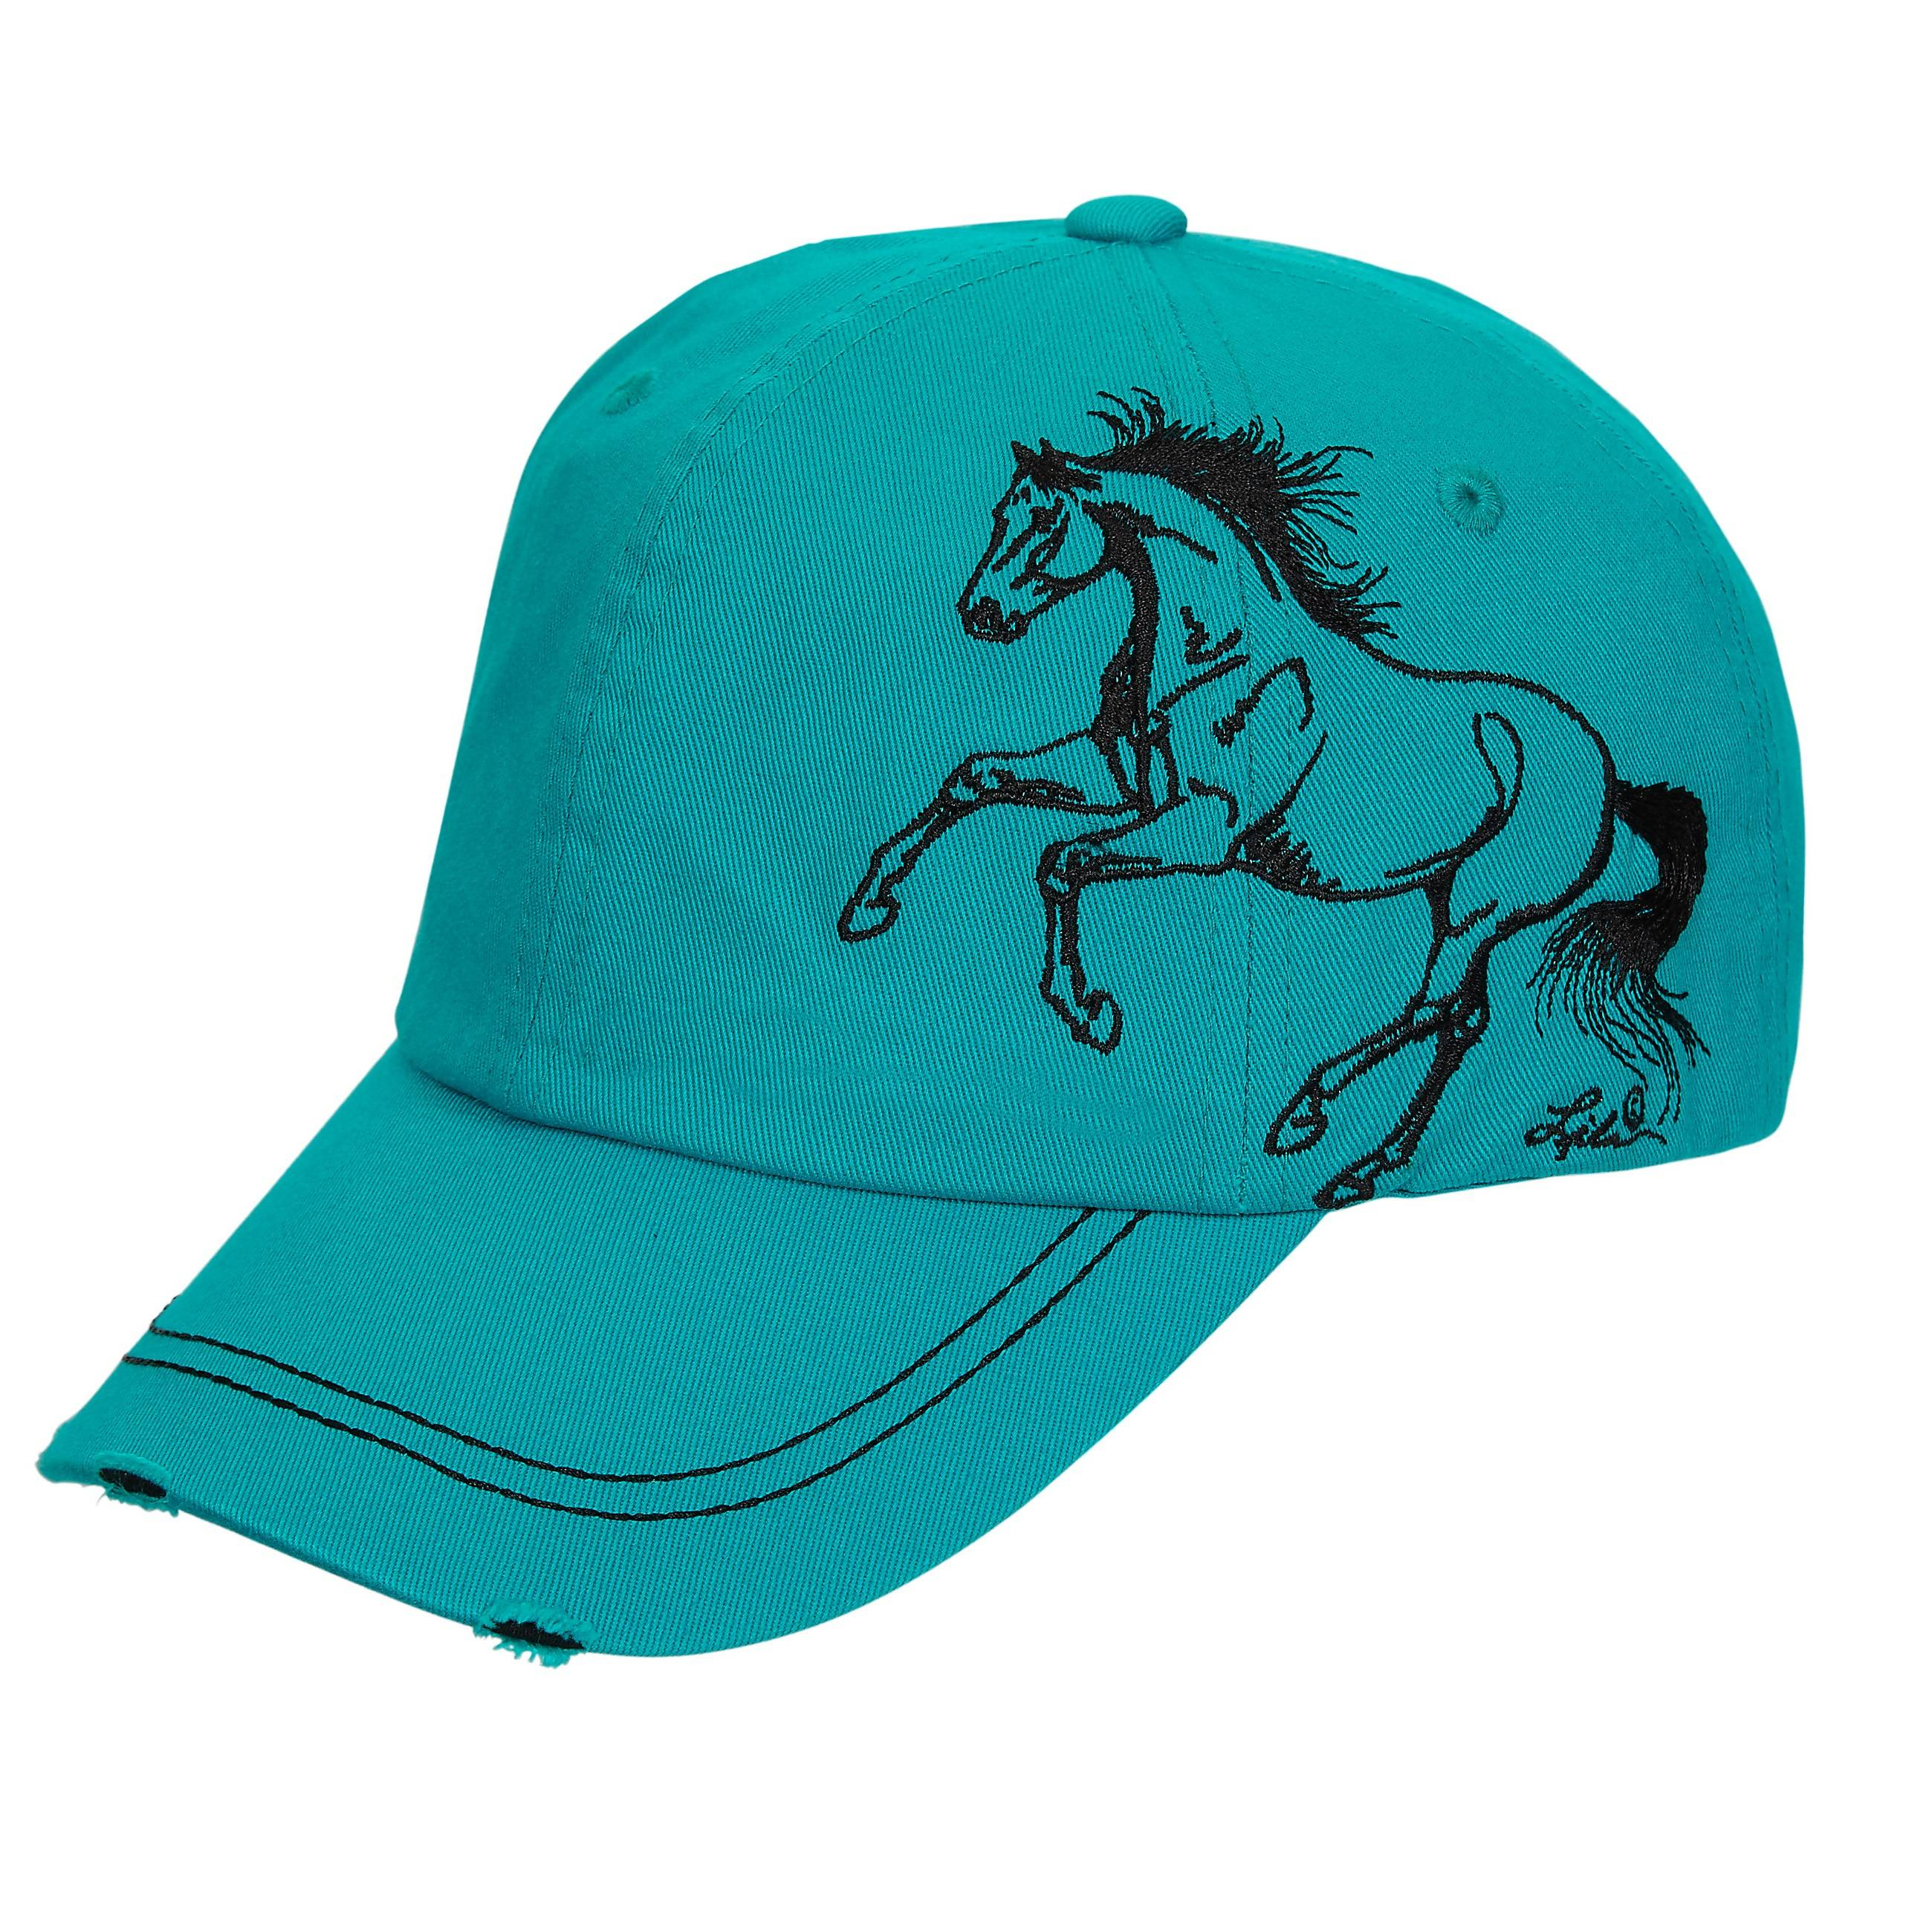 Kelley 3-D Galloping Cap - Ladies